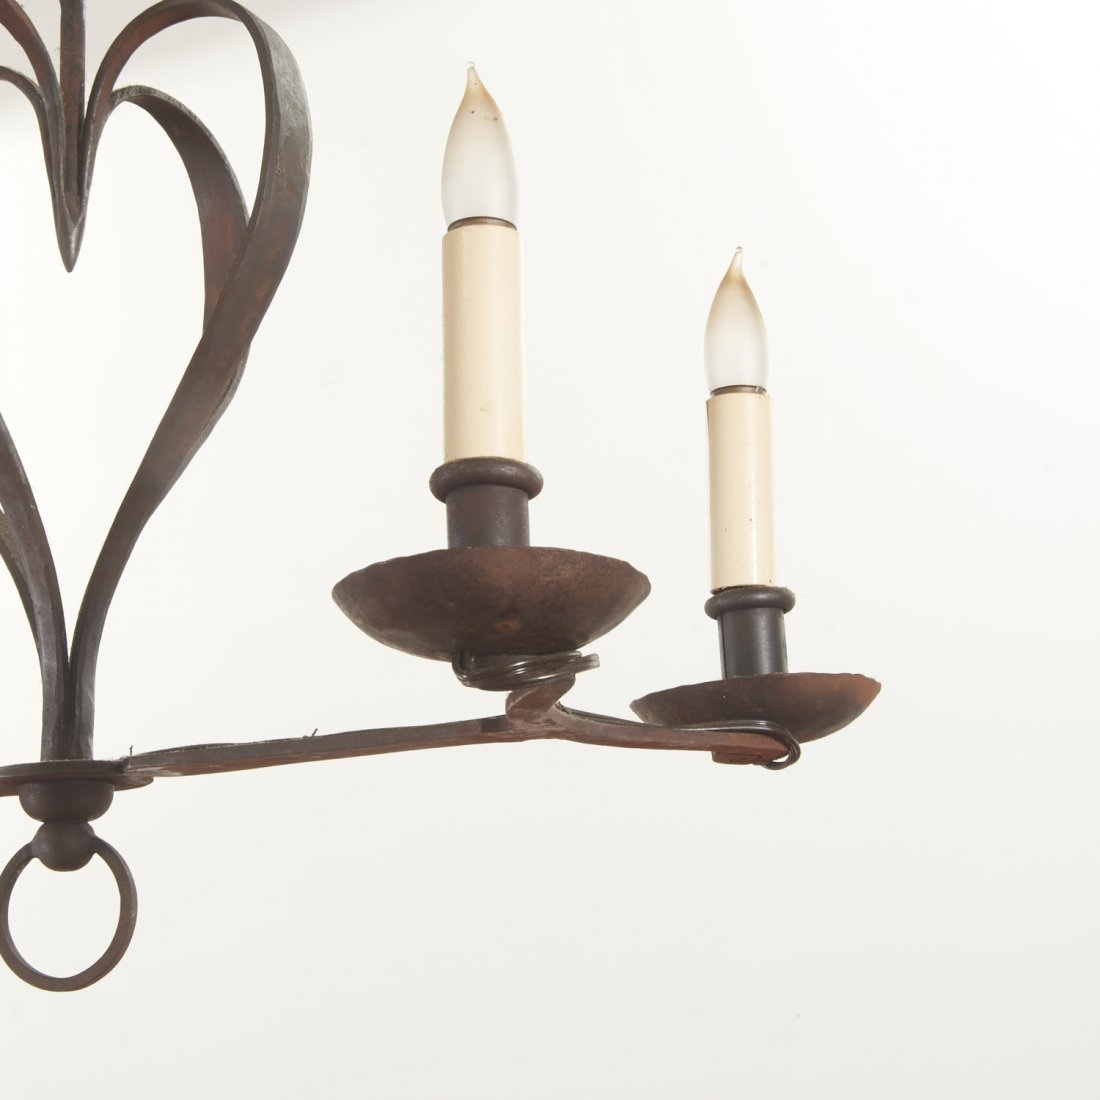 French Provincial style wrought iron chandelier - 3